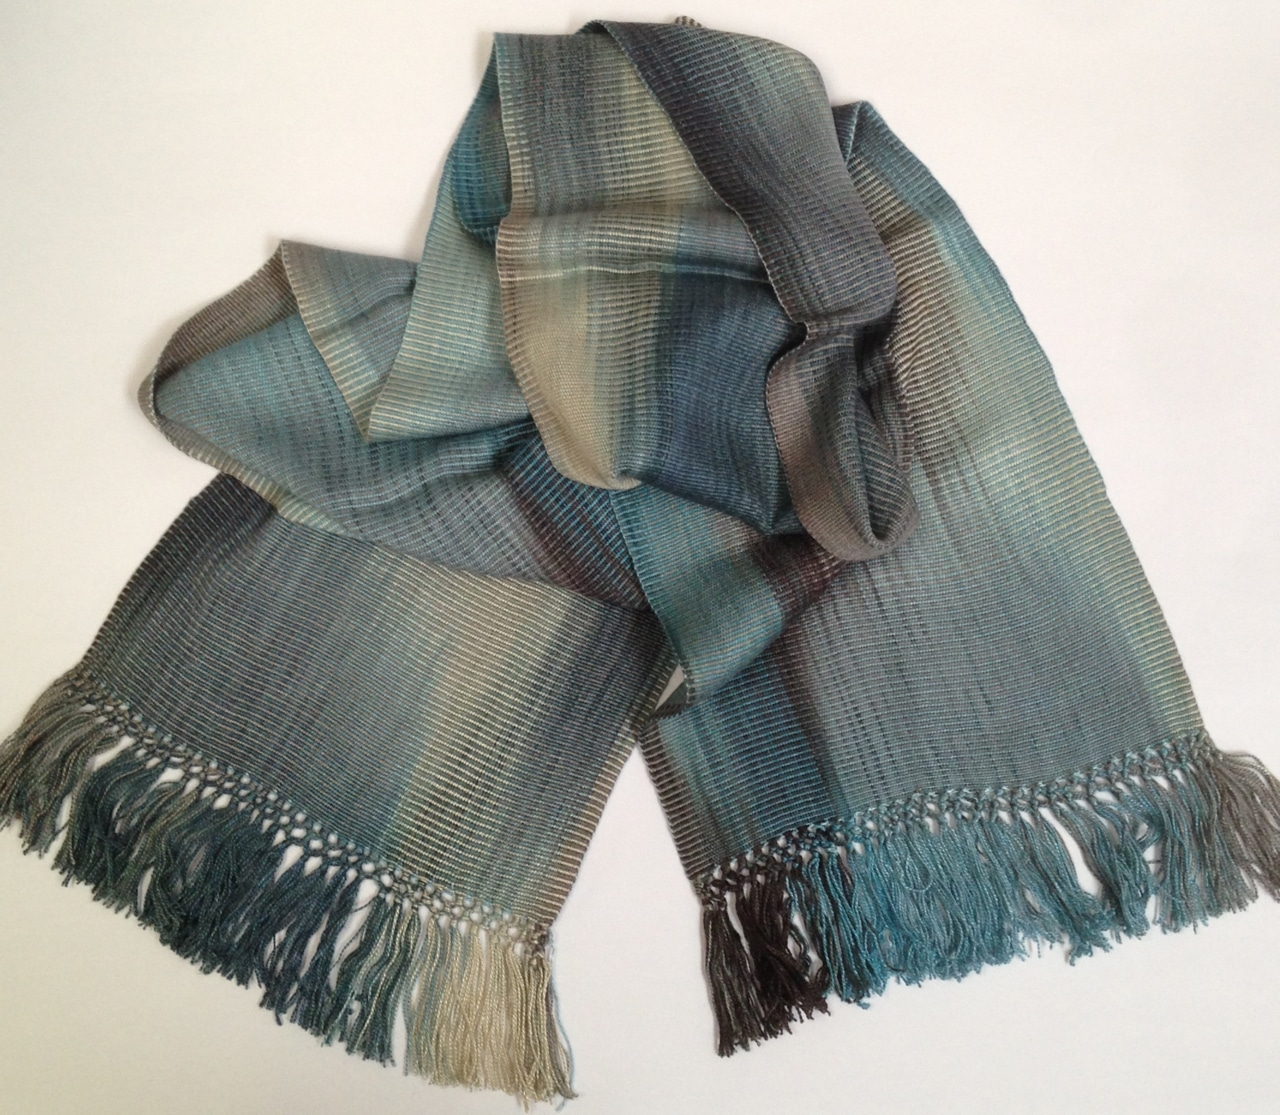 Blue, Black, Gray - Lightweight Bamboo Handwoven Scarf 8